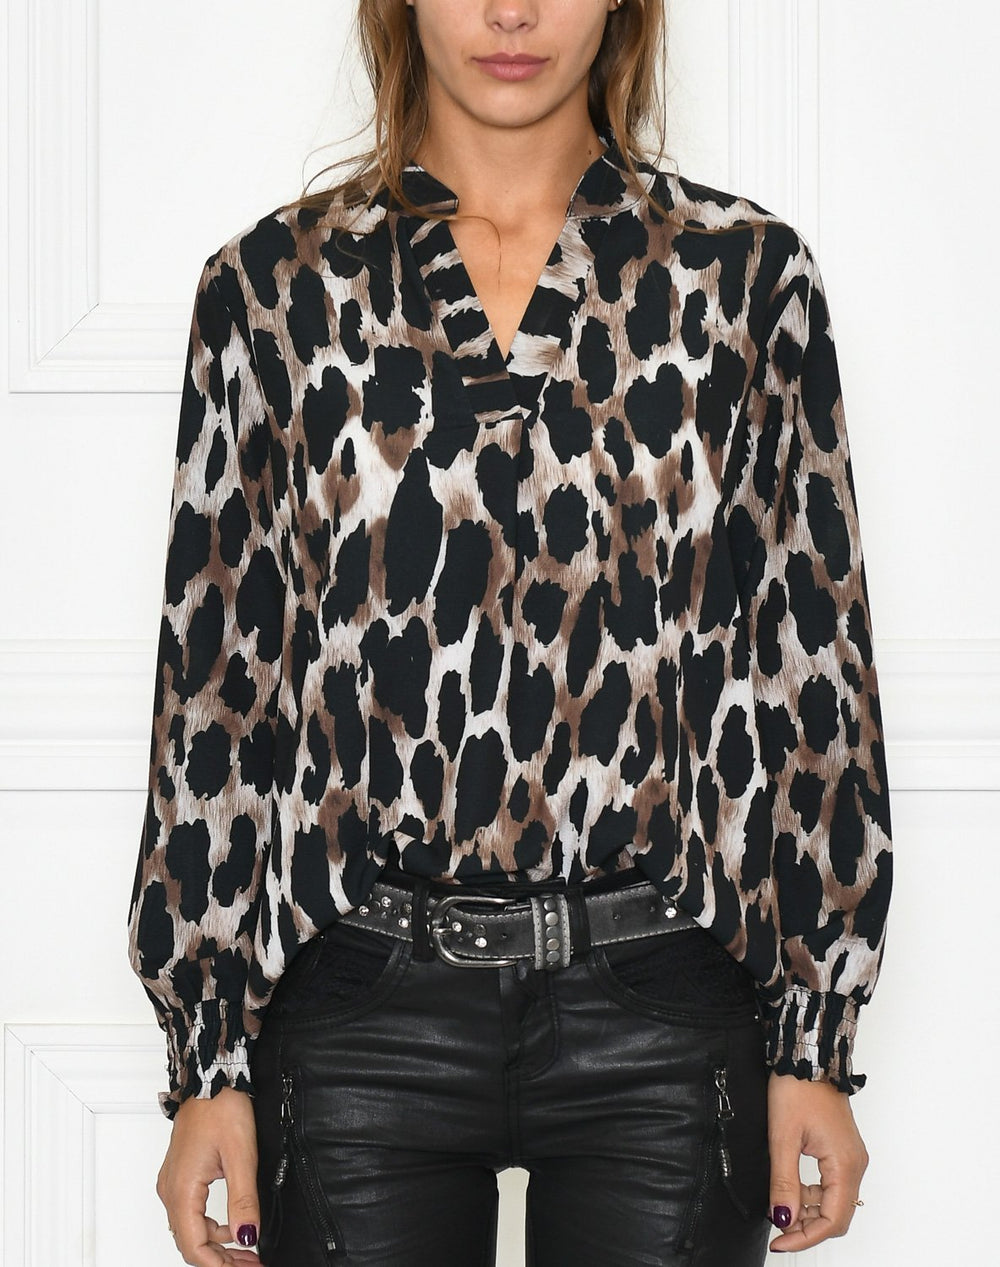 Milly bluse brown leopard mix - Online-Mode